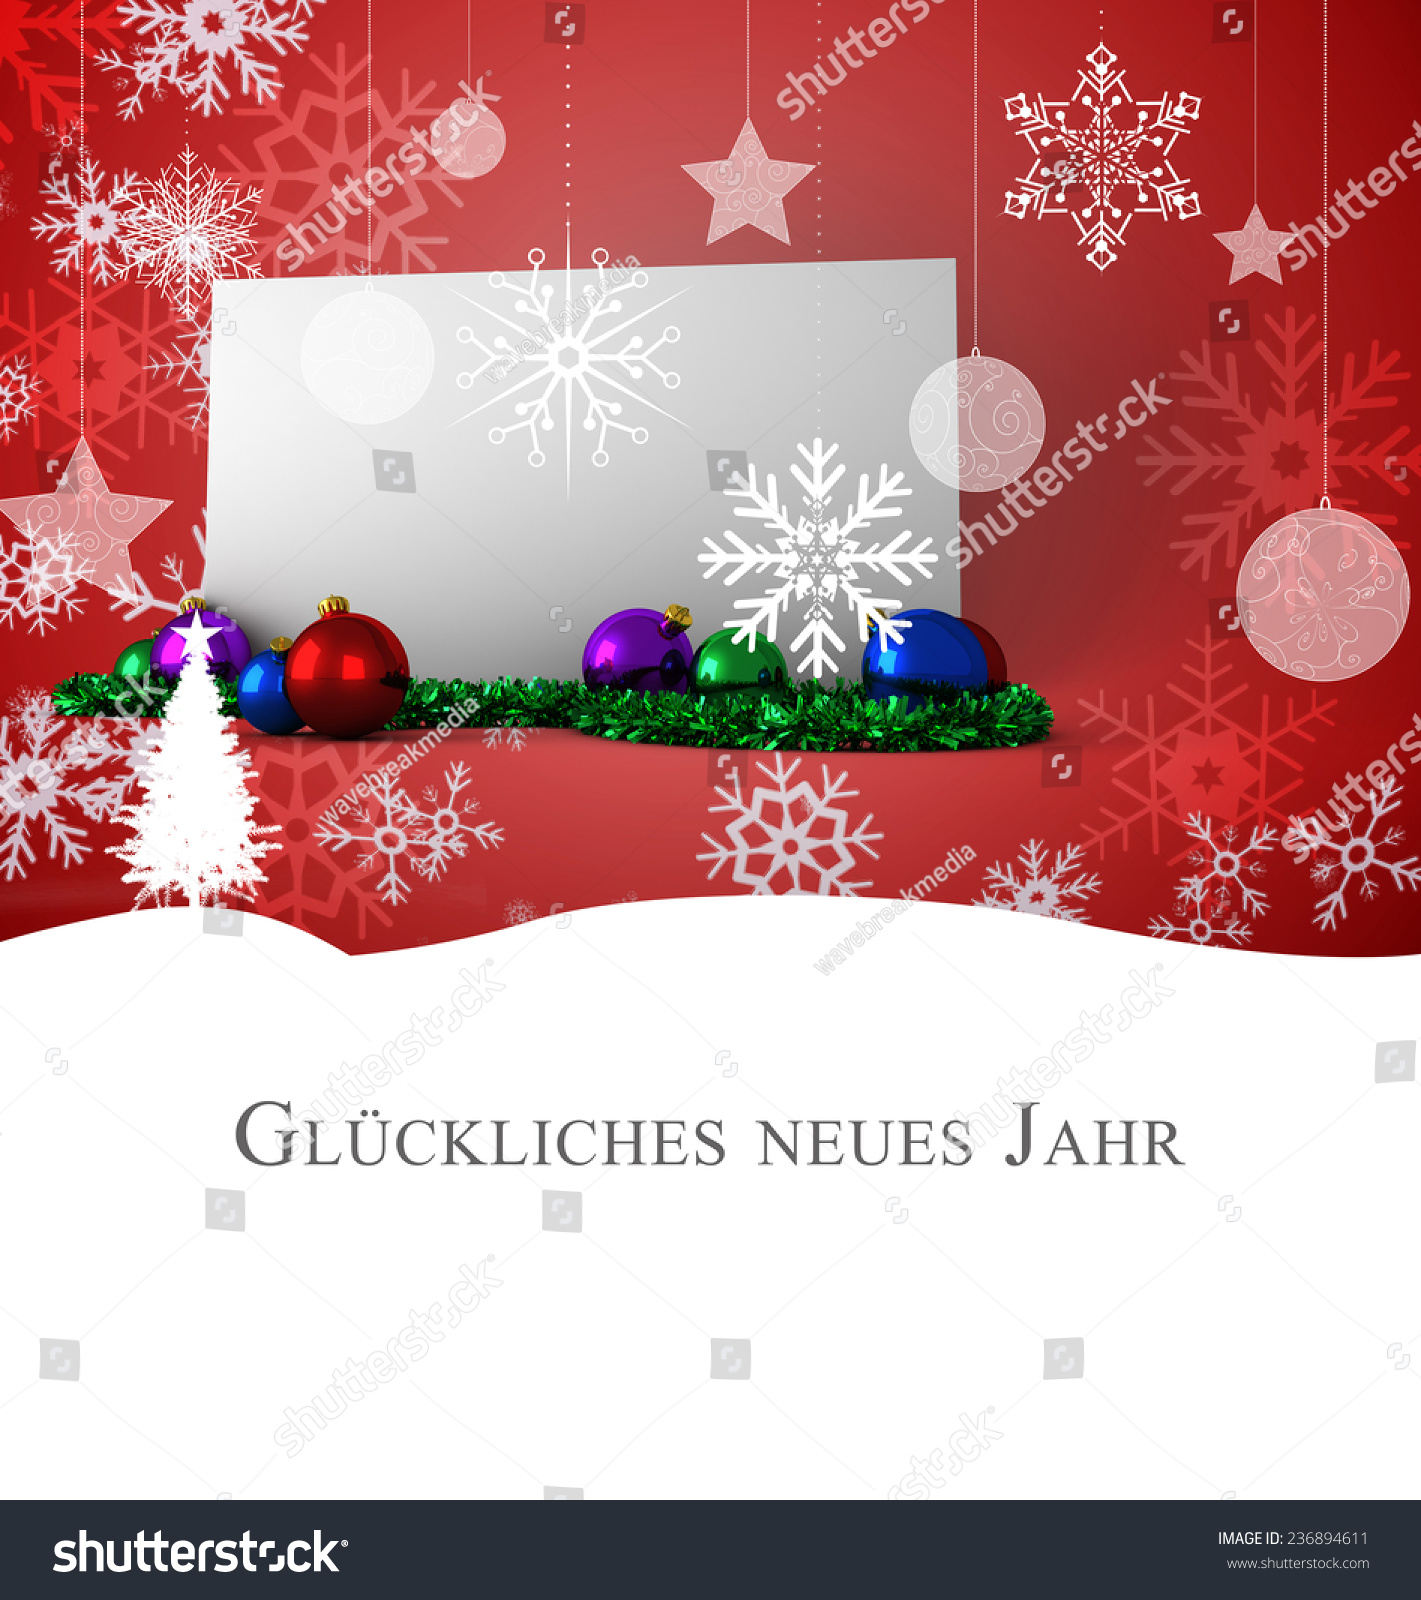 Christmas Greeting German Against Poster Baubles Stock Illustration